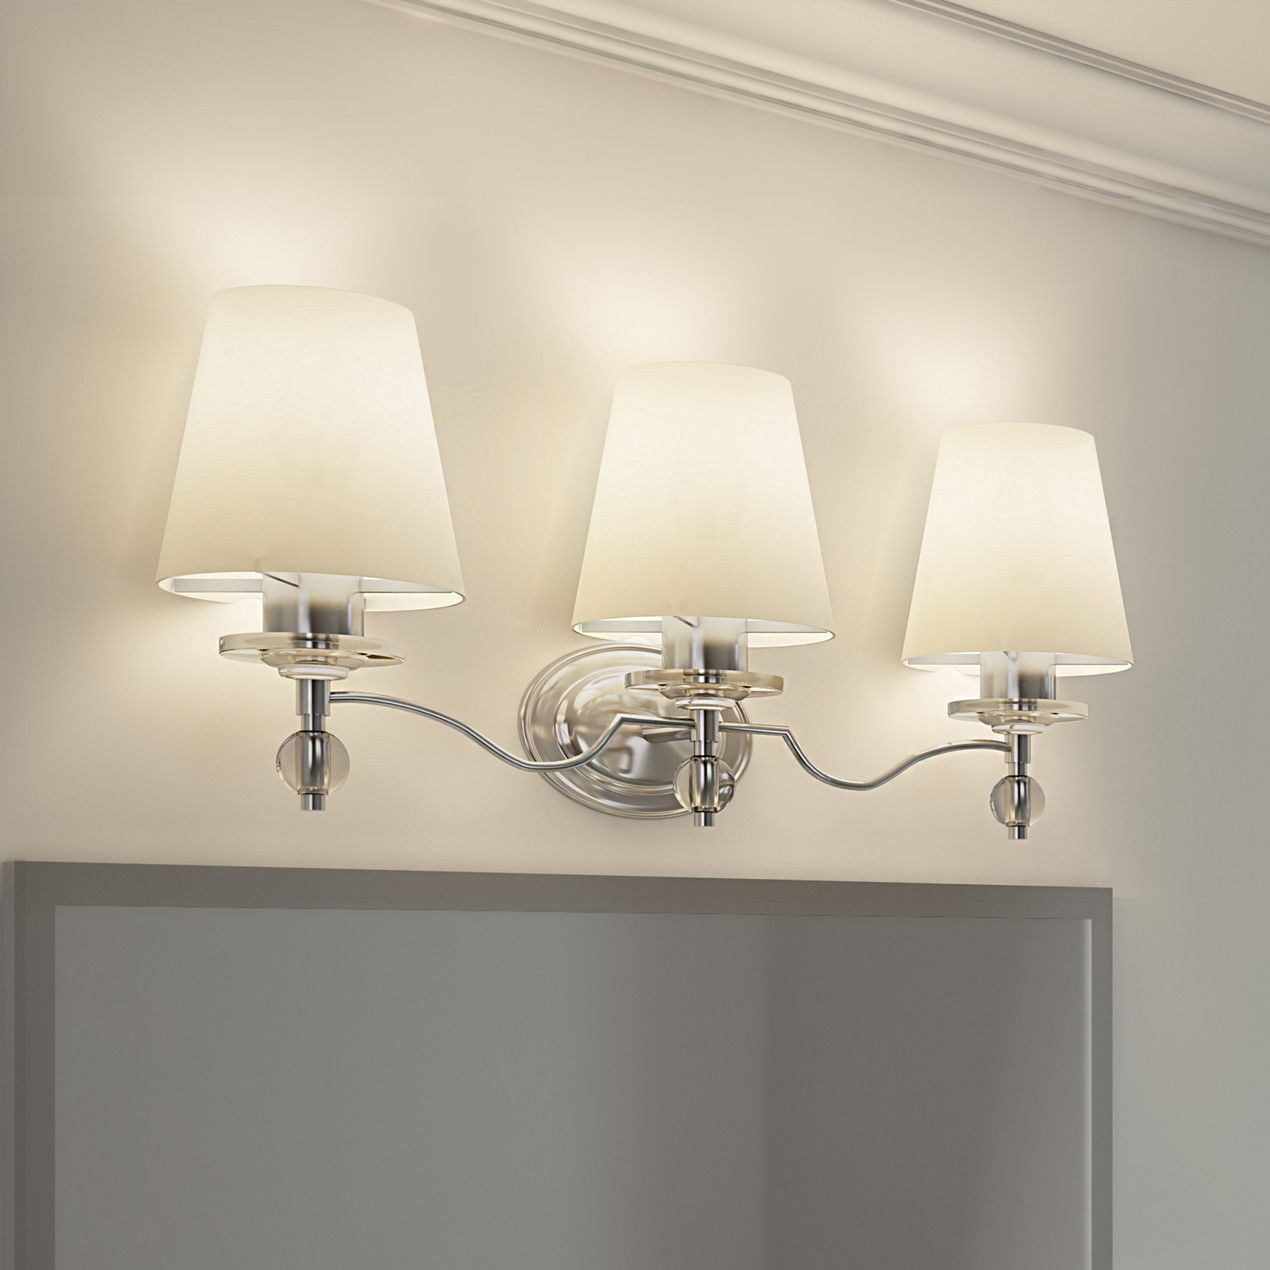 Features Three Light Bath Fixture Number Of Lights 3 White